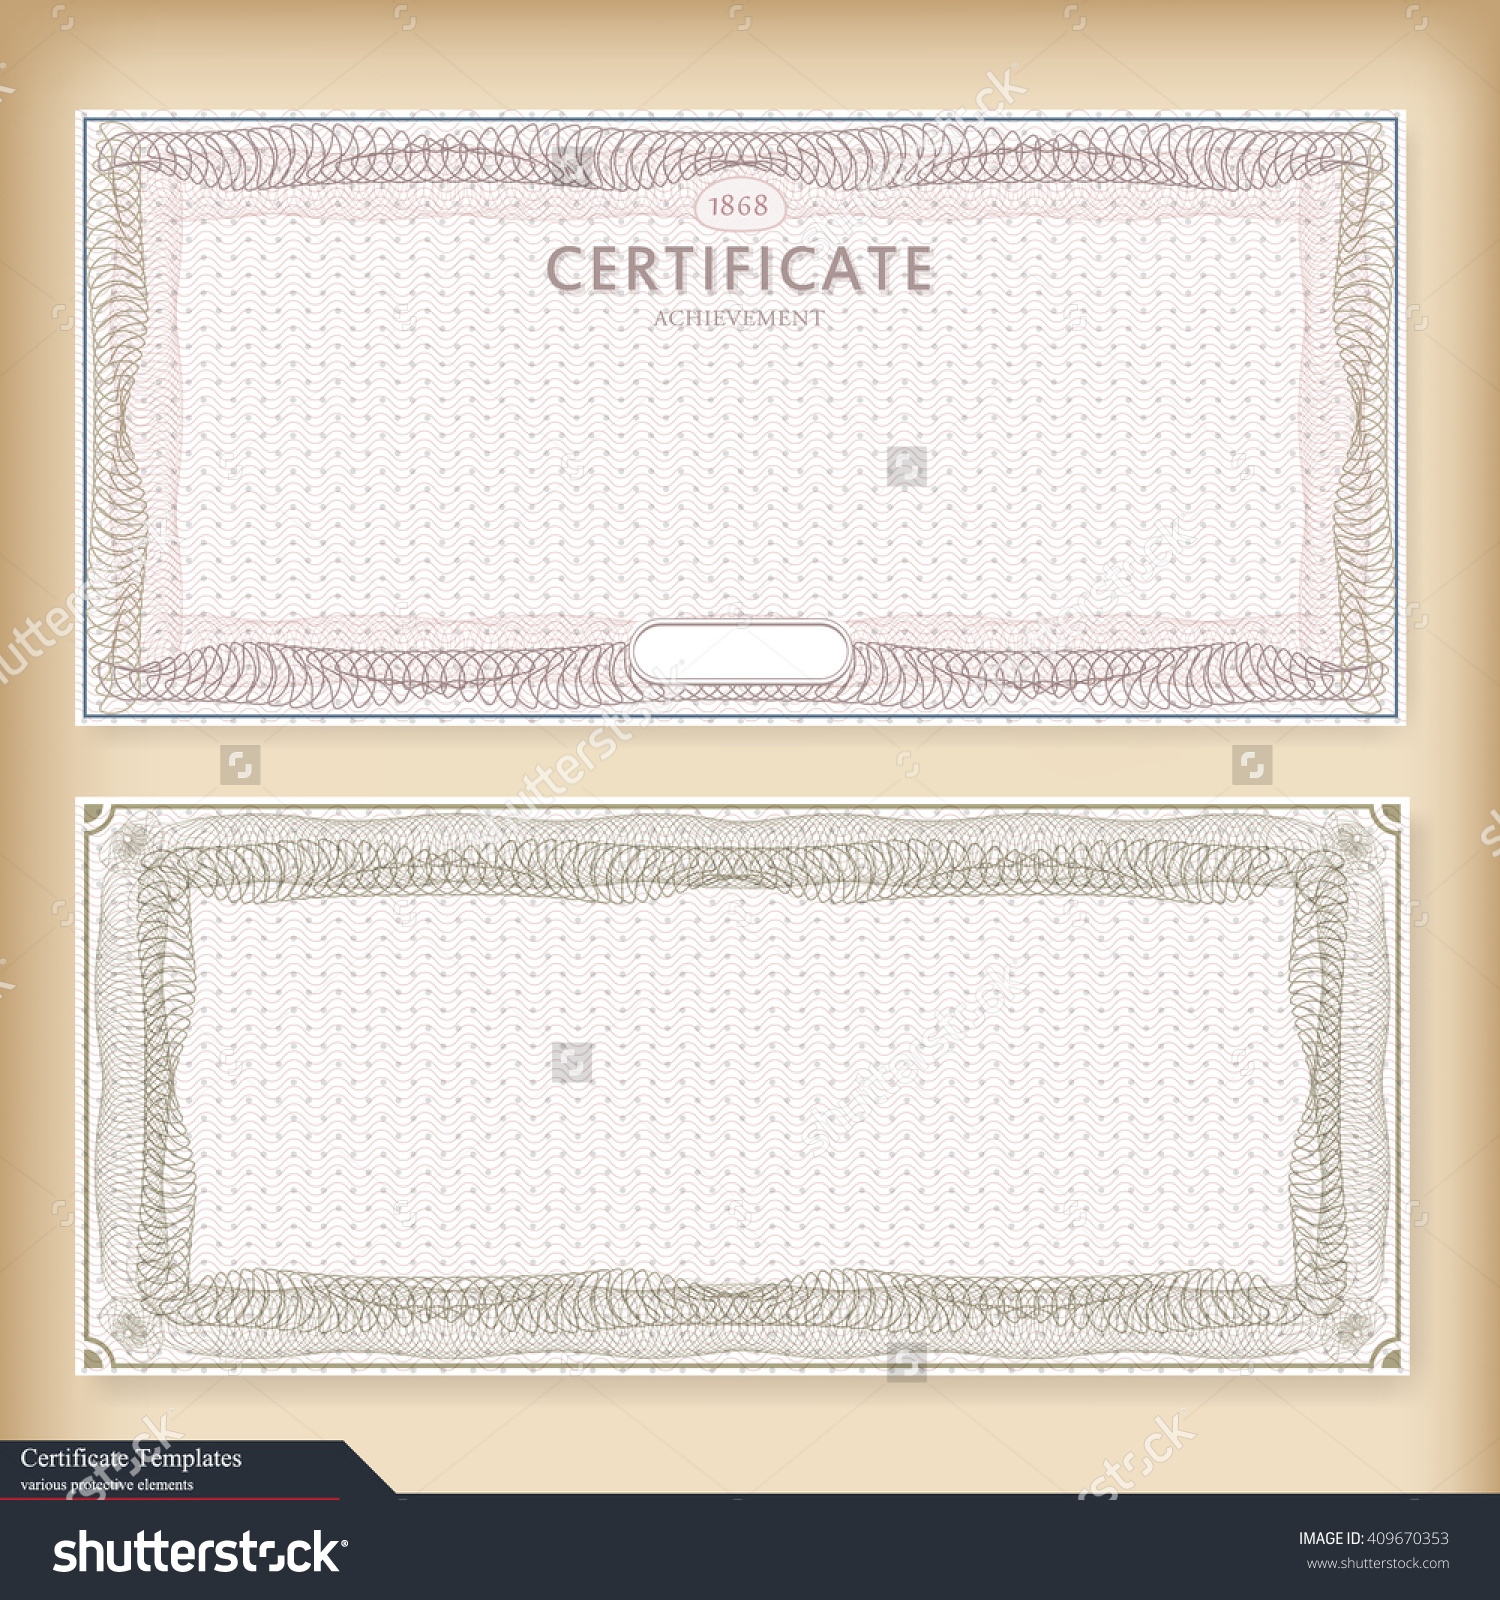 Vintage Certificate Template Watermark Ornate Gift Stock Vector